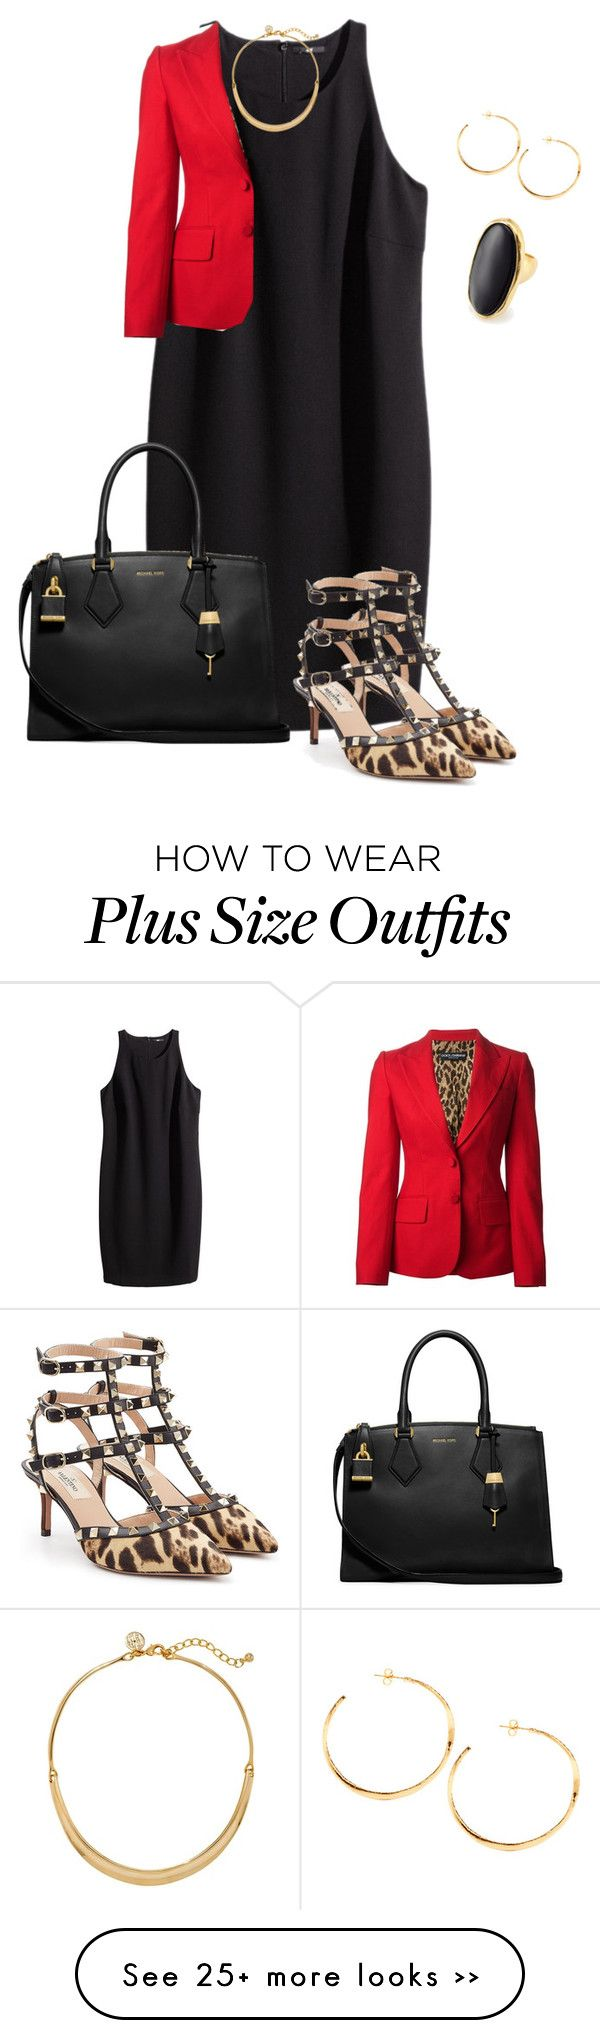 """plus size working it"" by kristie-payne on Polyvore"